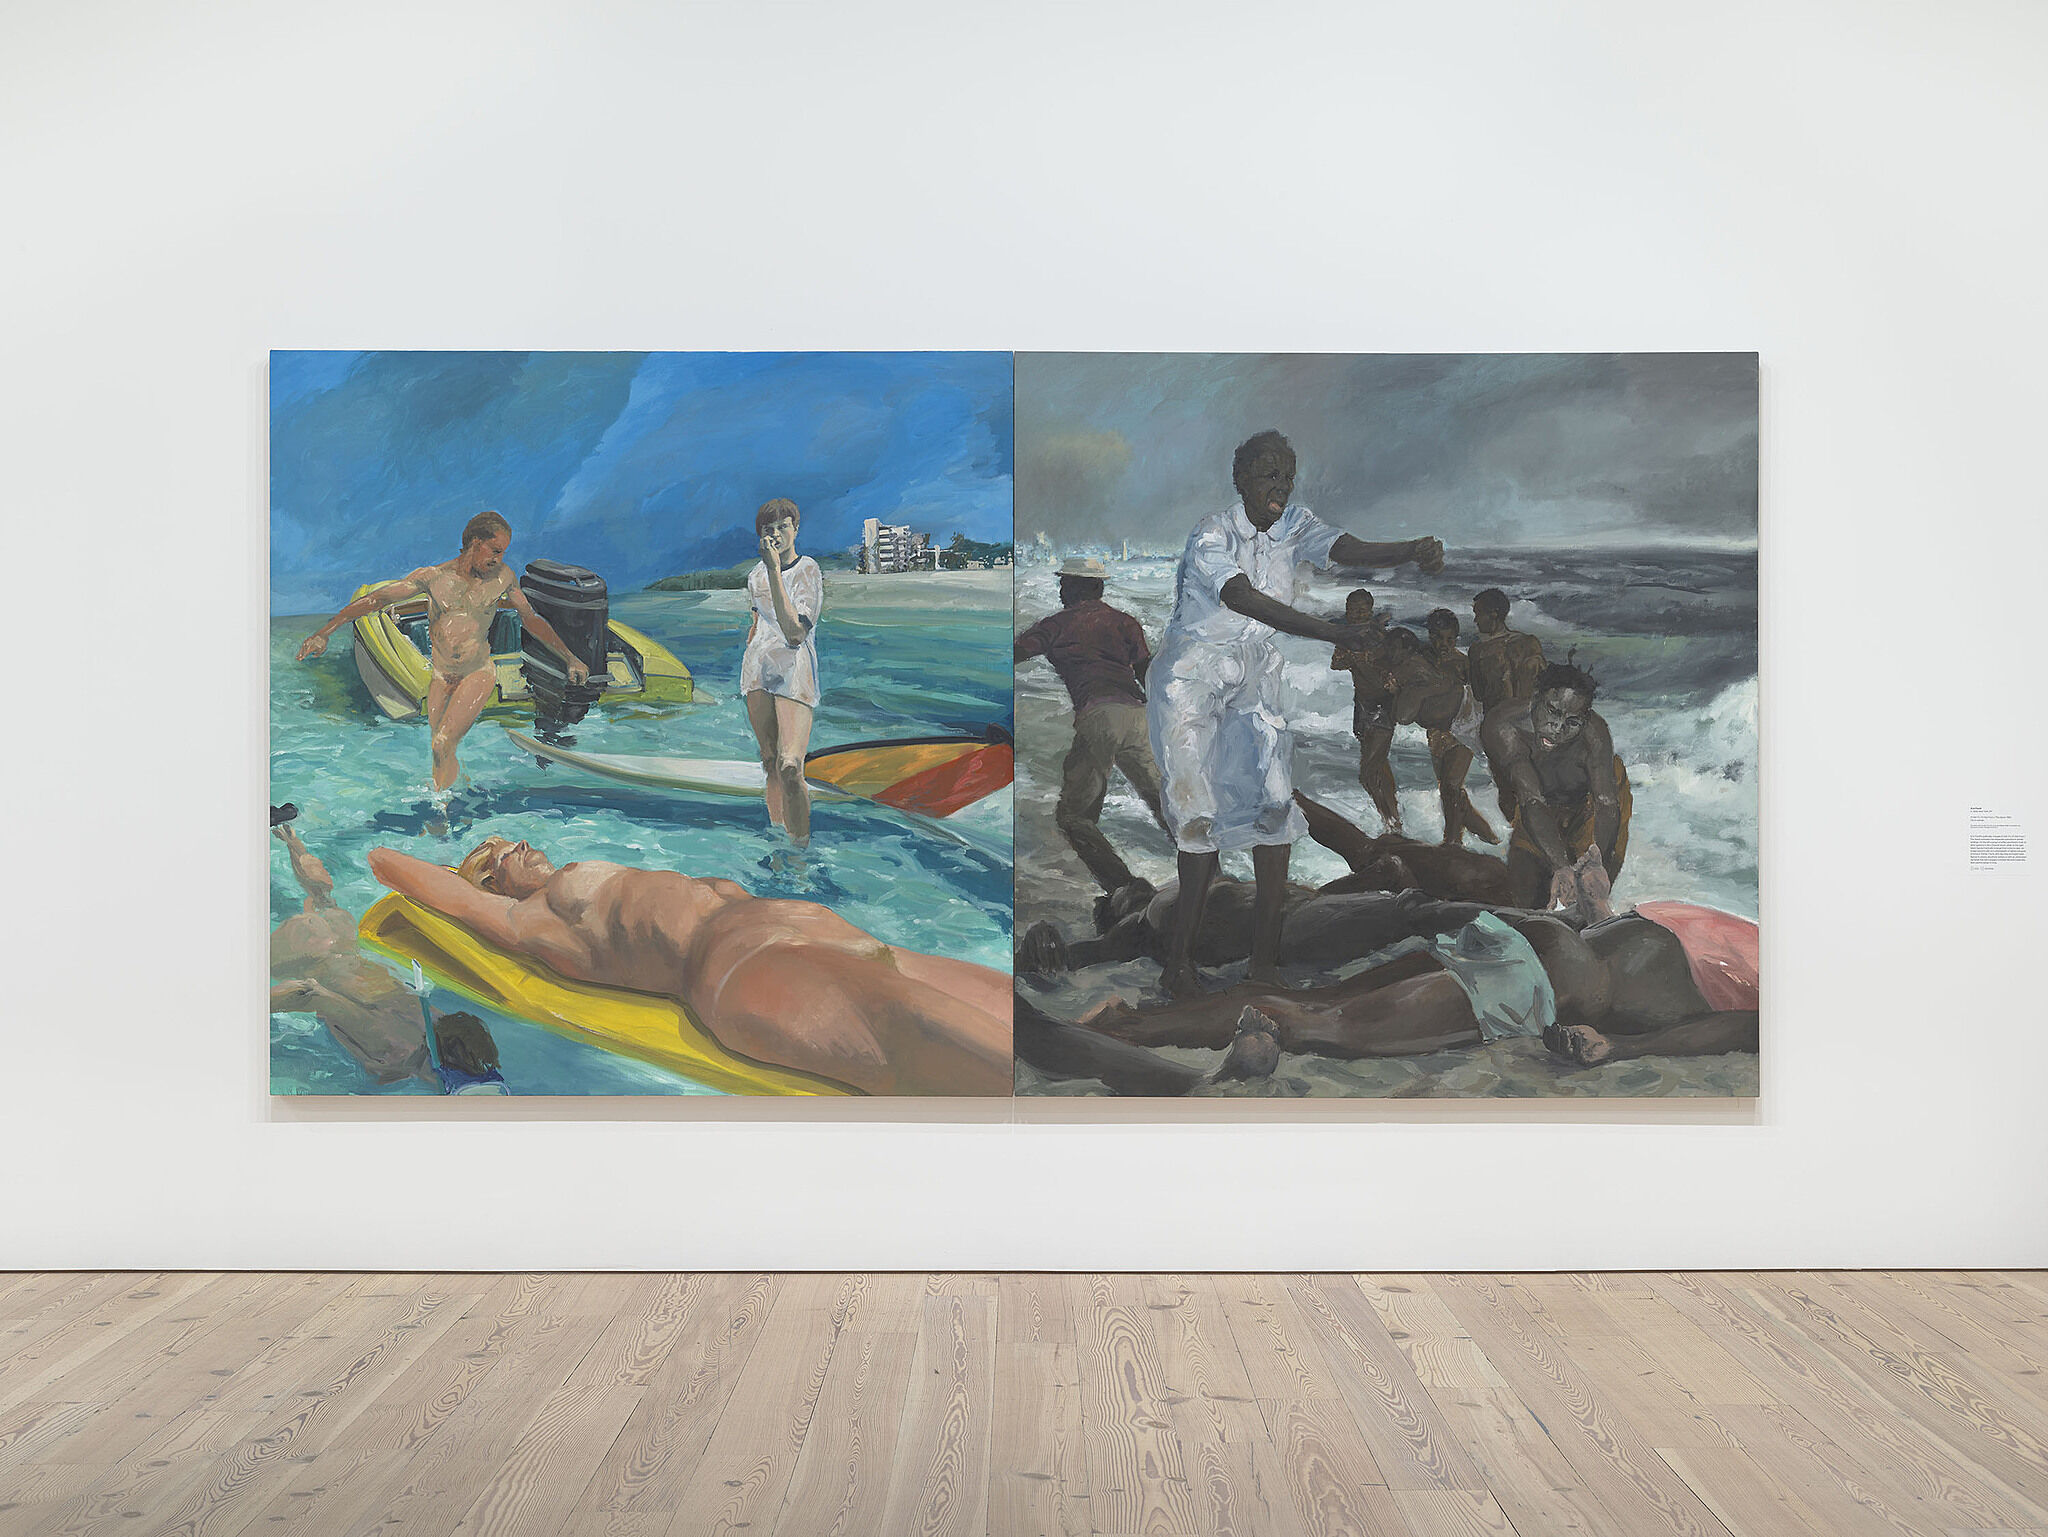 Eric Fischl's large painting hanging on the wall.